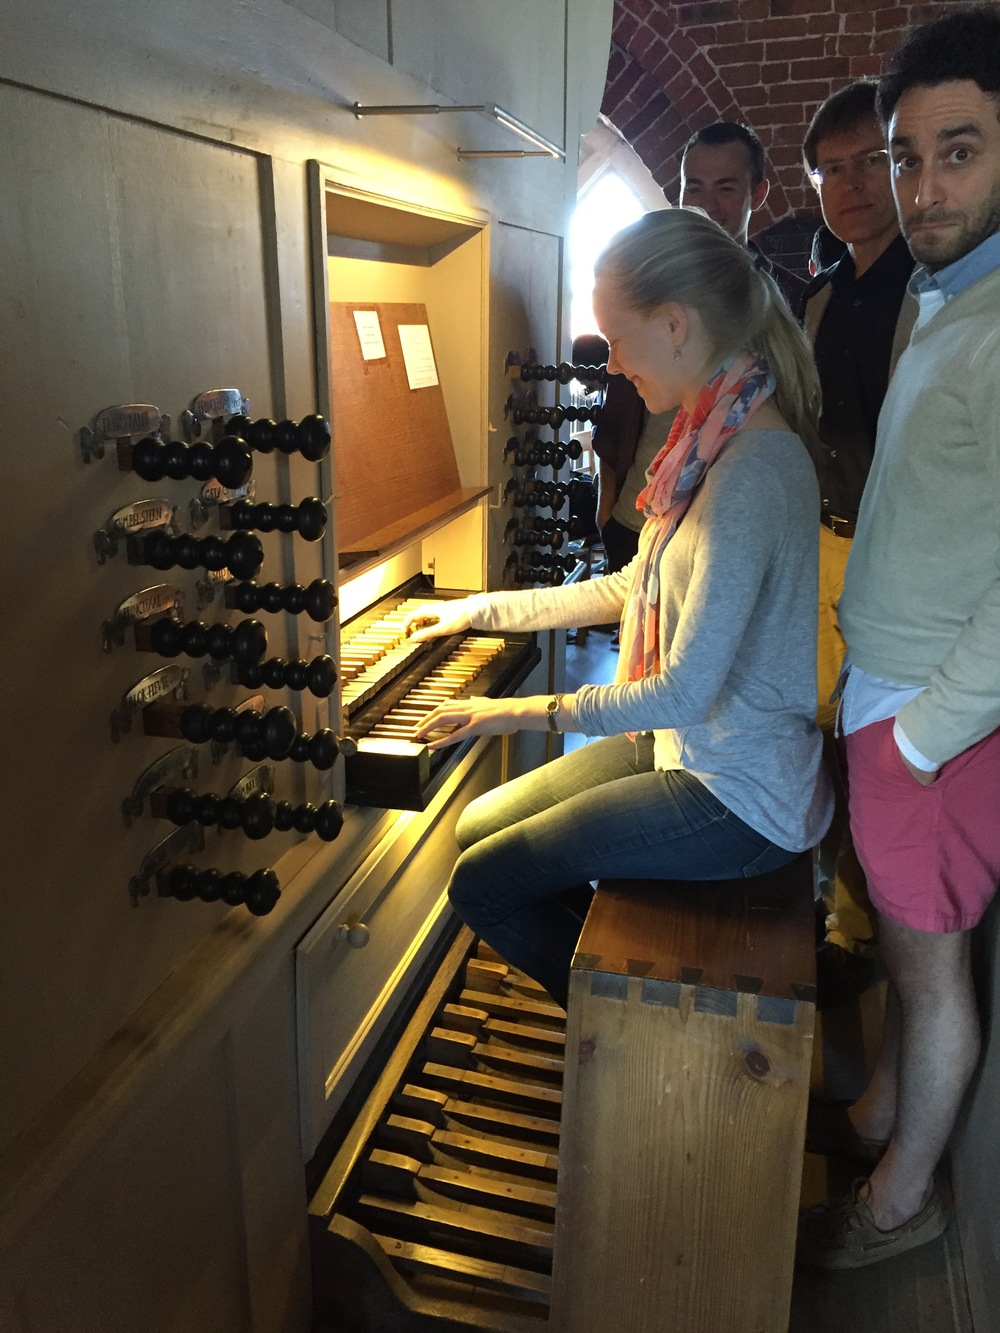 Laura enjoys her time improvising on the Evers organ.